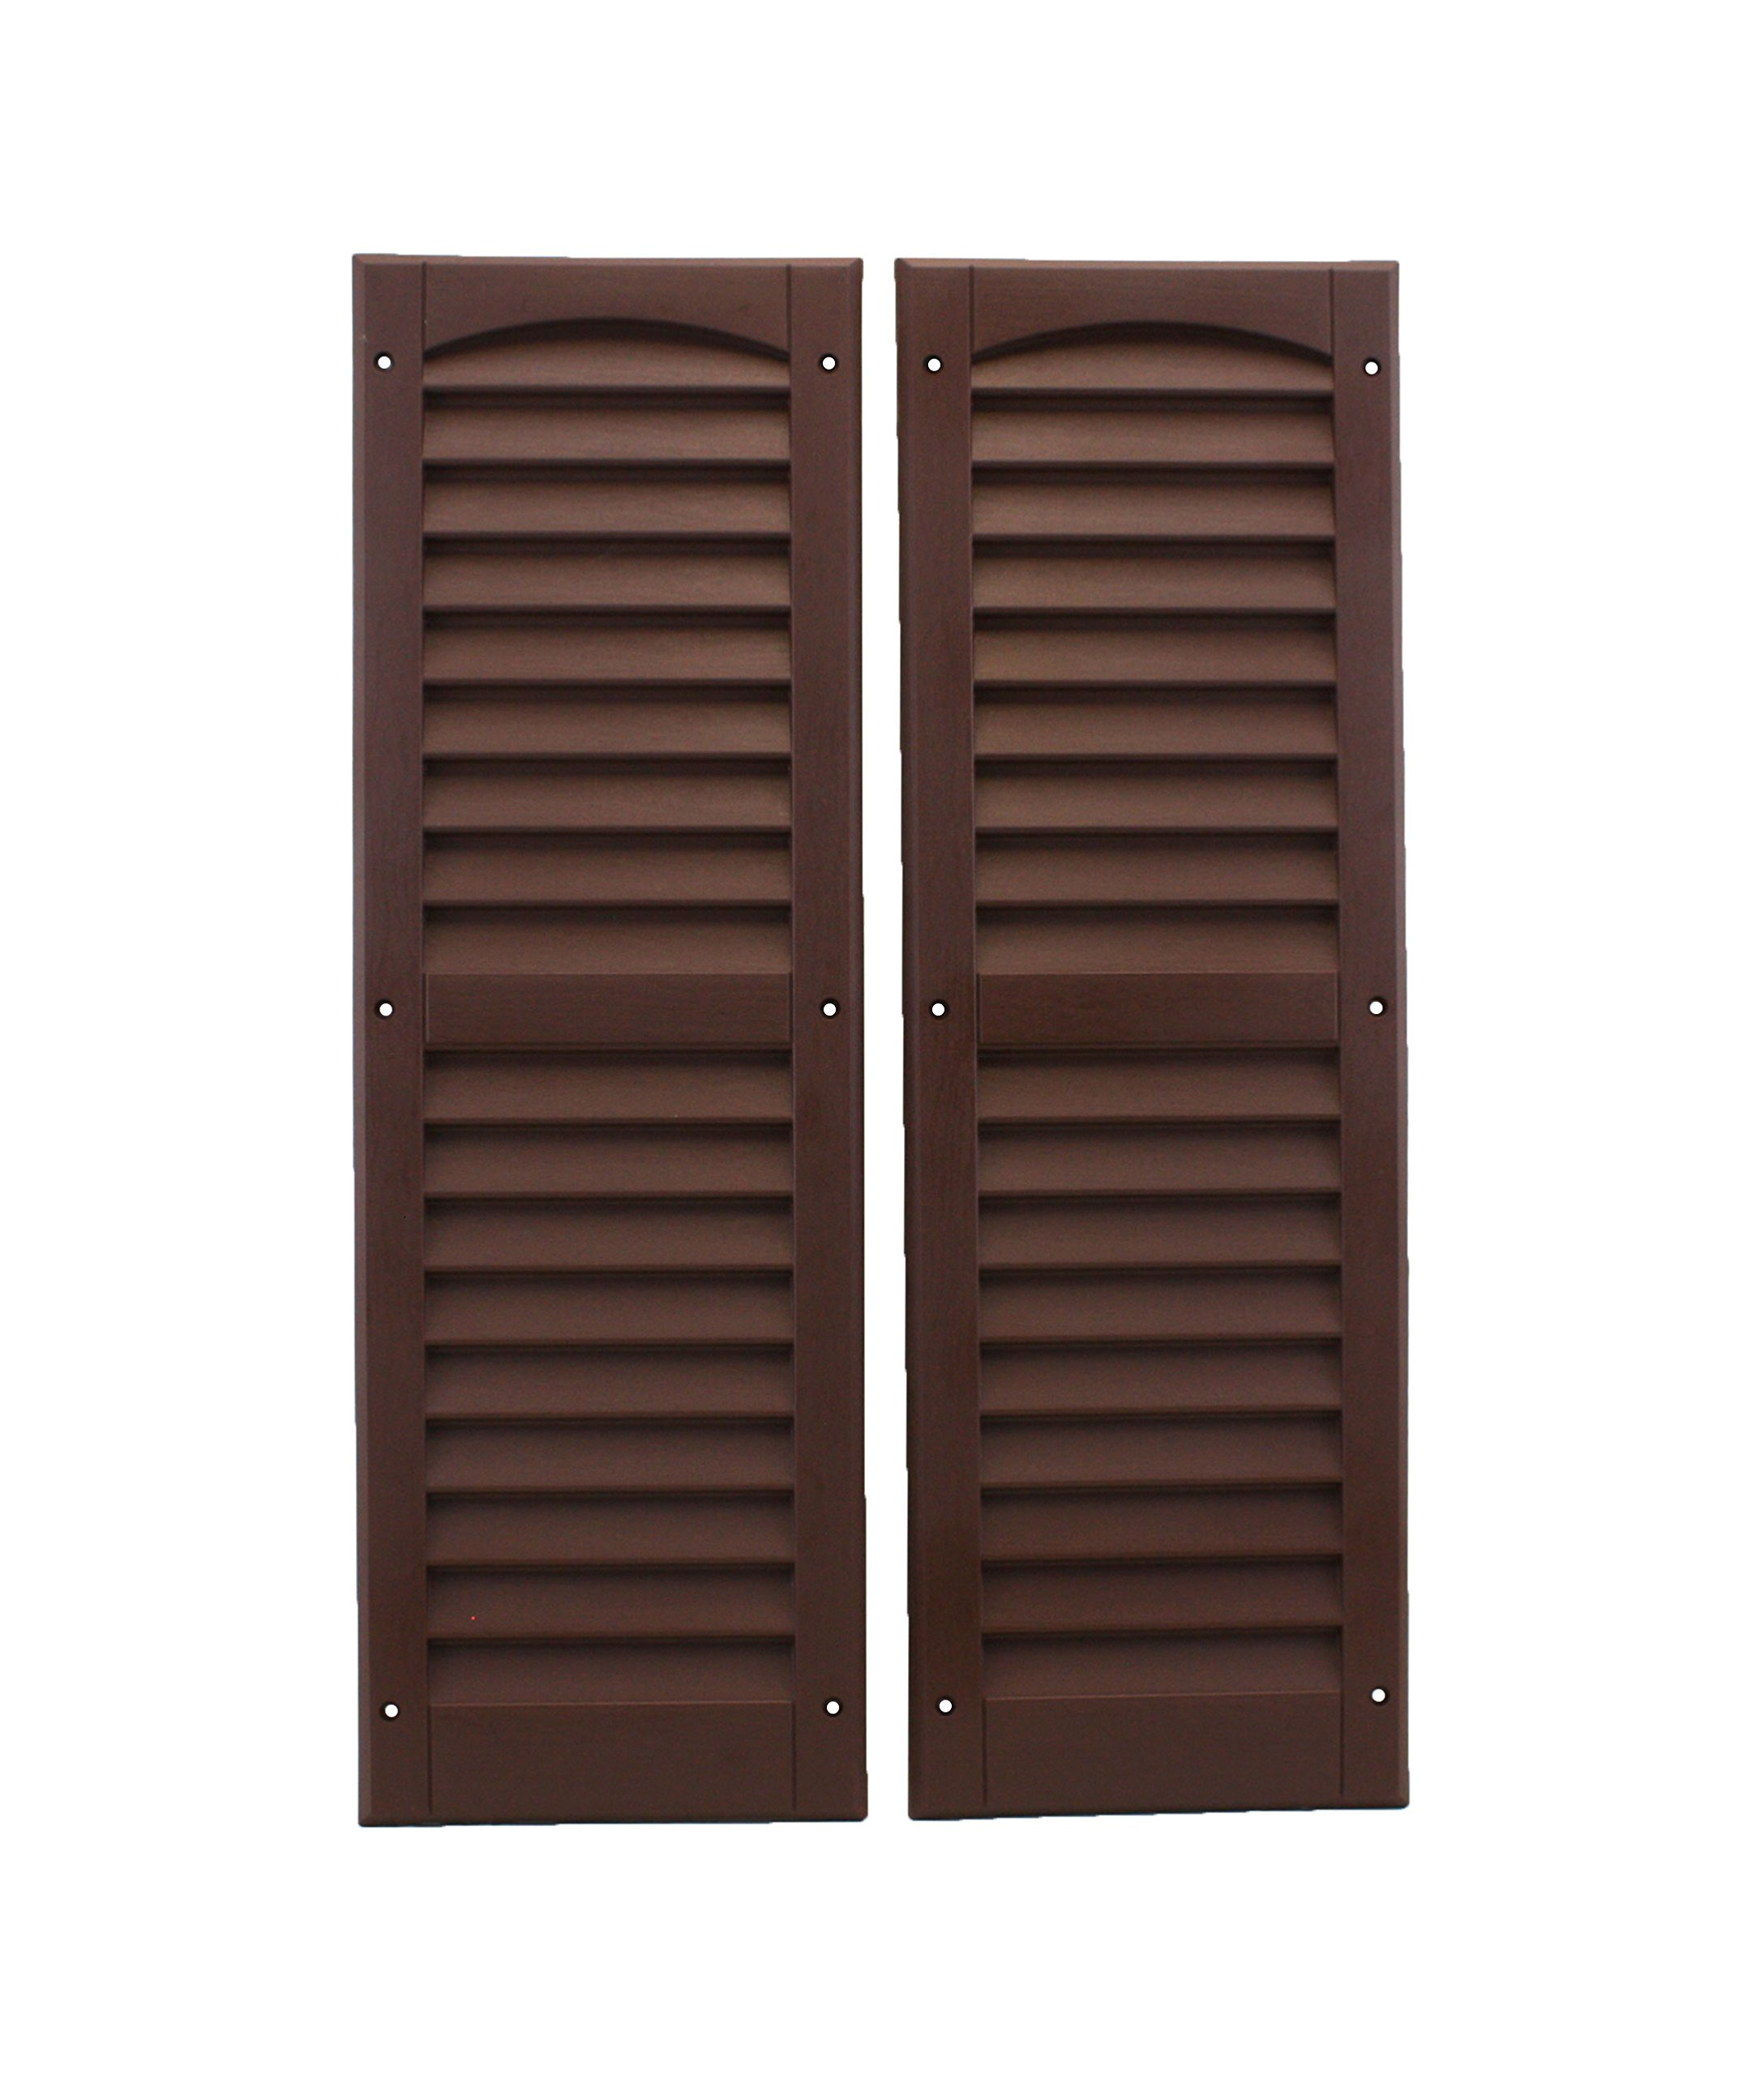 Louvered Shed Shutter or Playhouse Shutter, Brown 9'' X 27'', 1 Pair